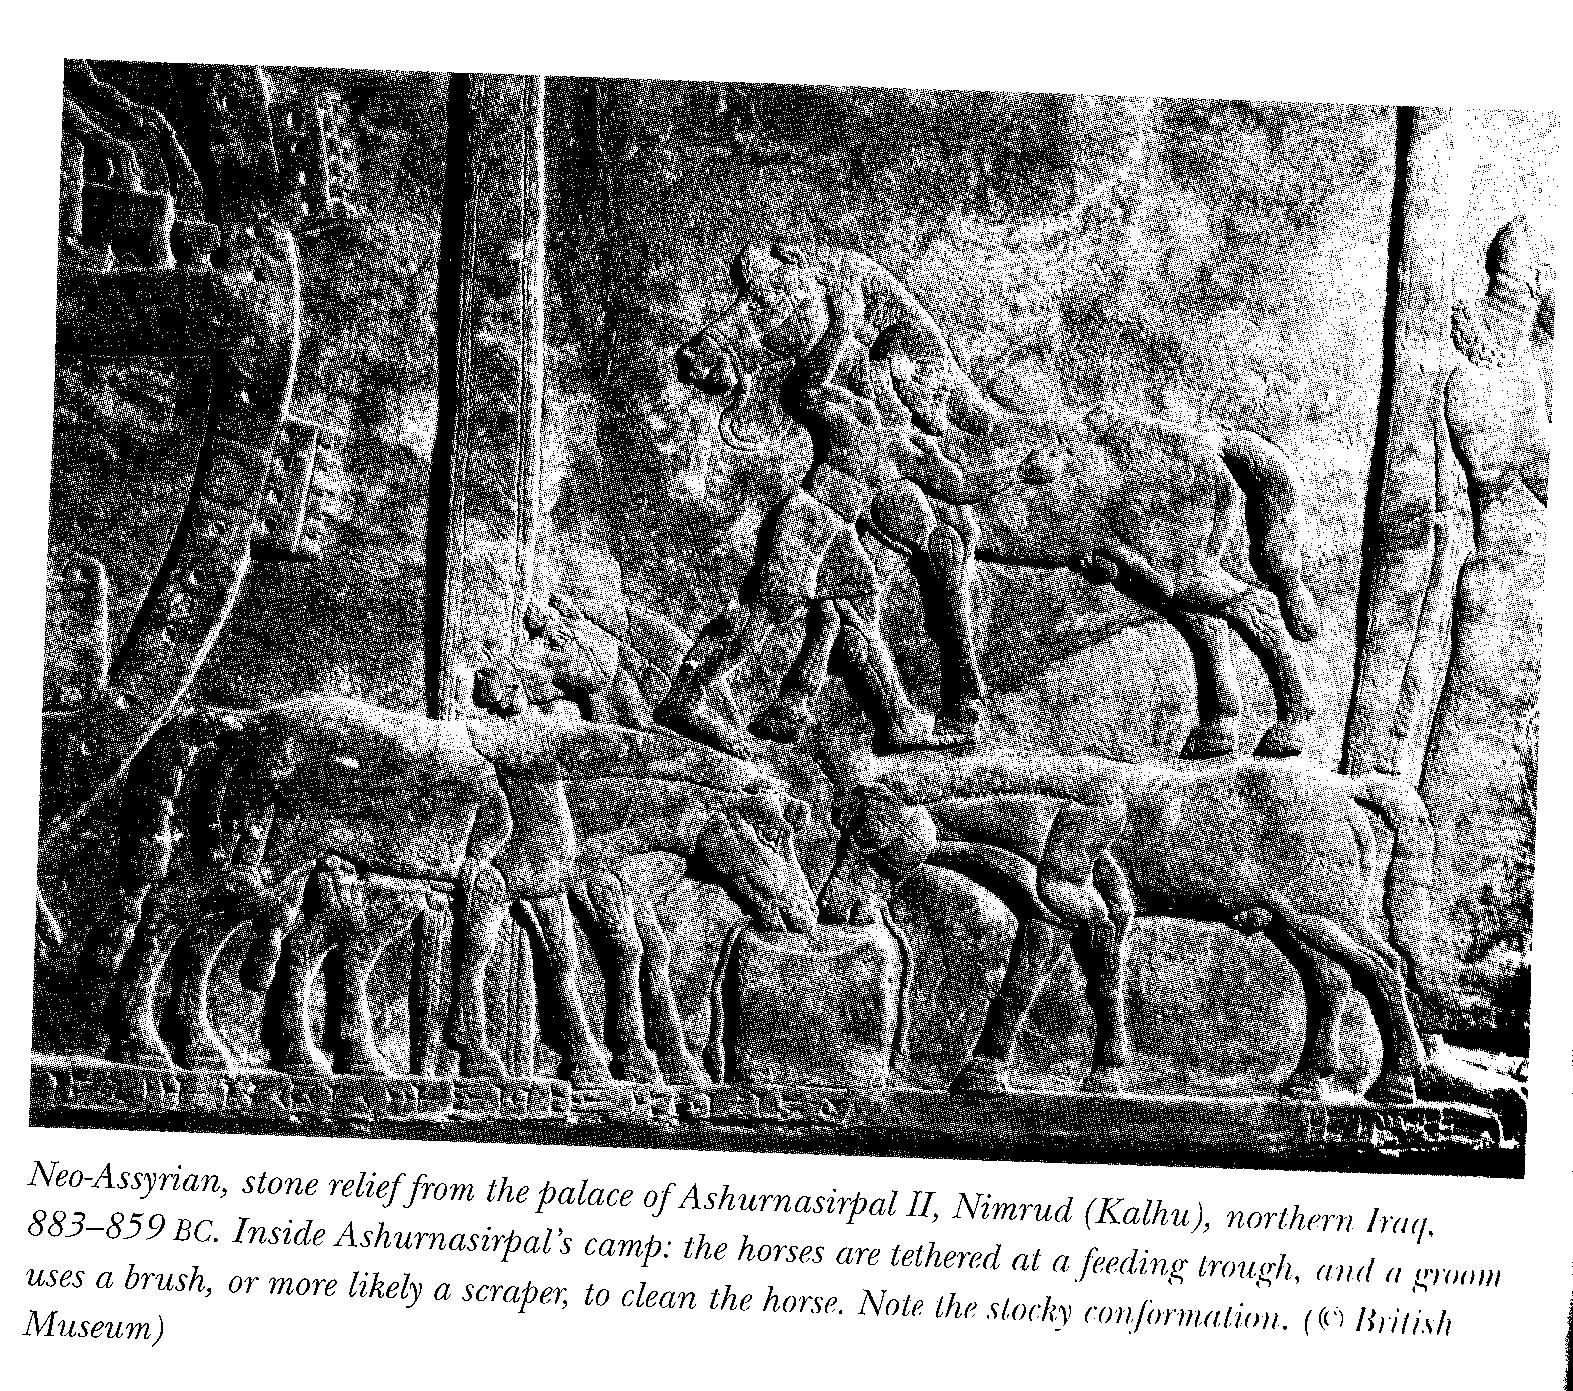 Nimrud, northern iraq 880 BCE